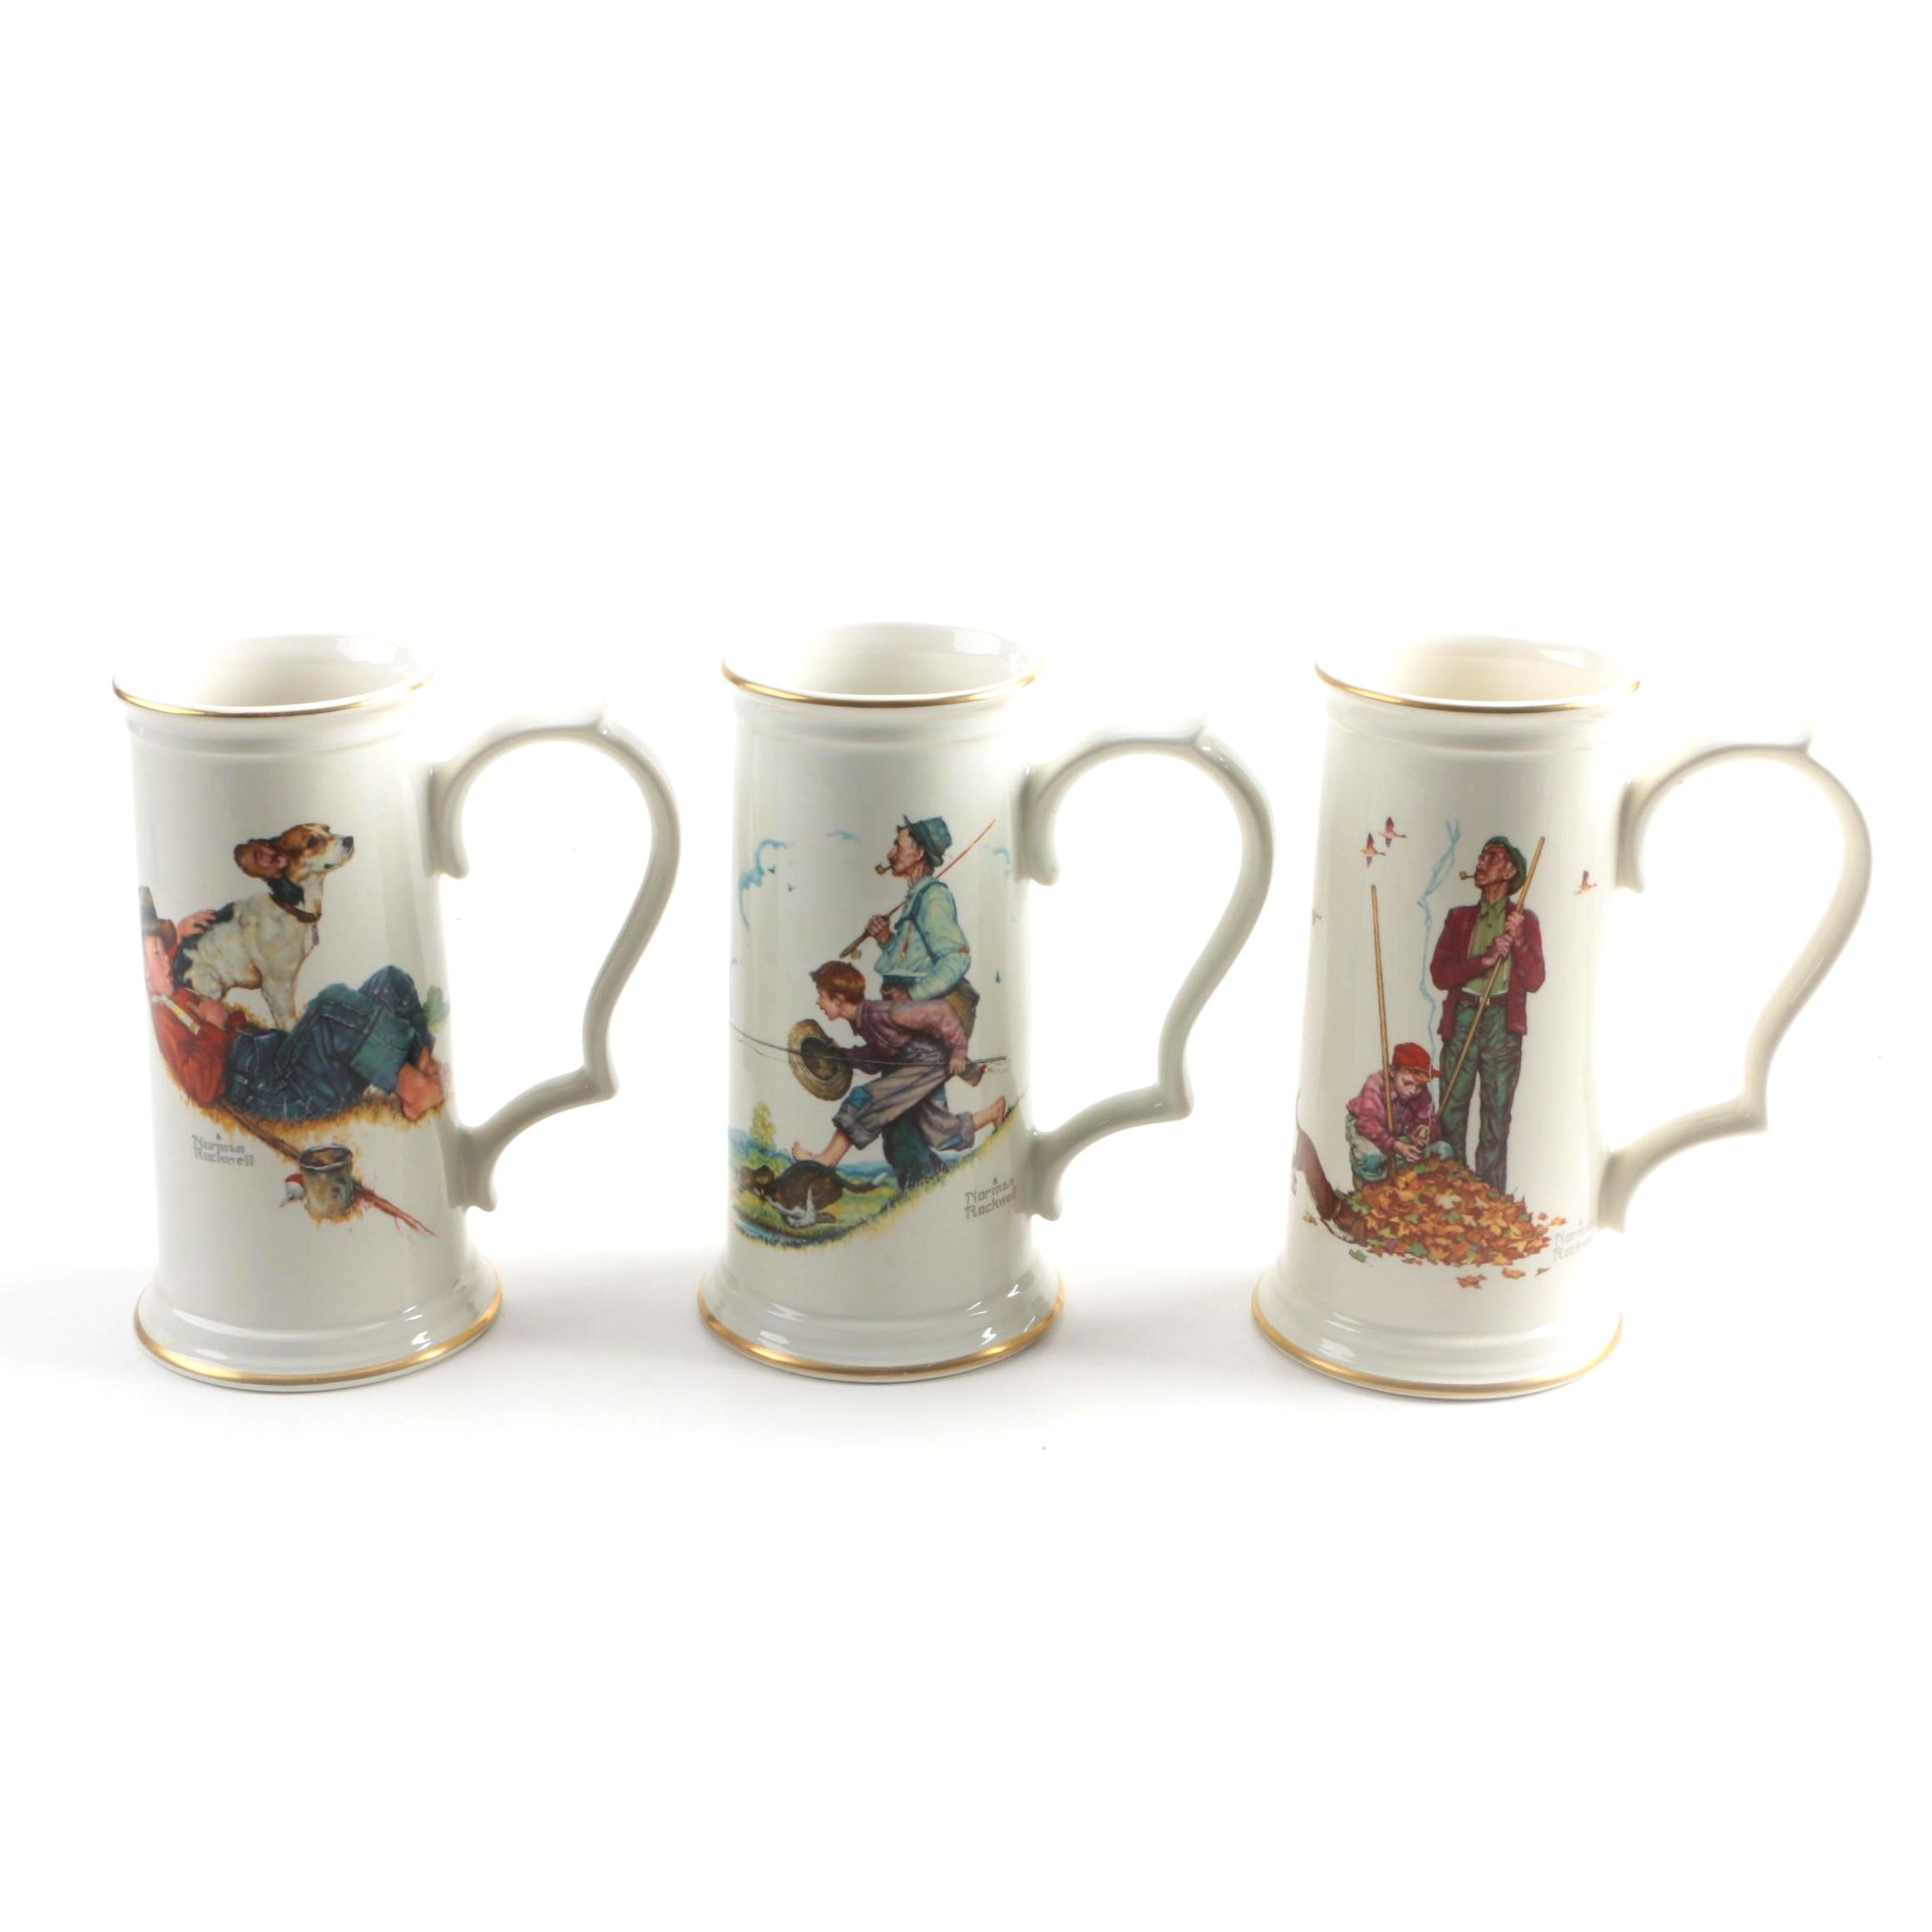 Three Gorham Norman Rockwell Mugs